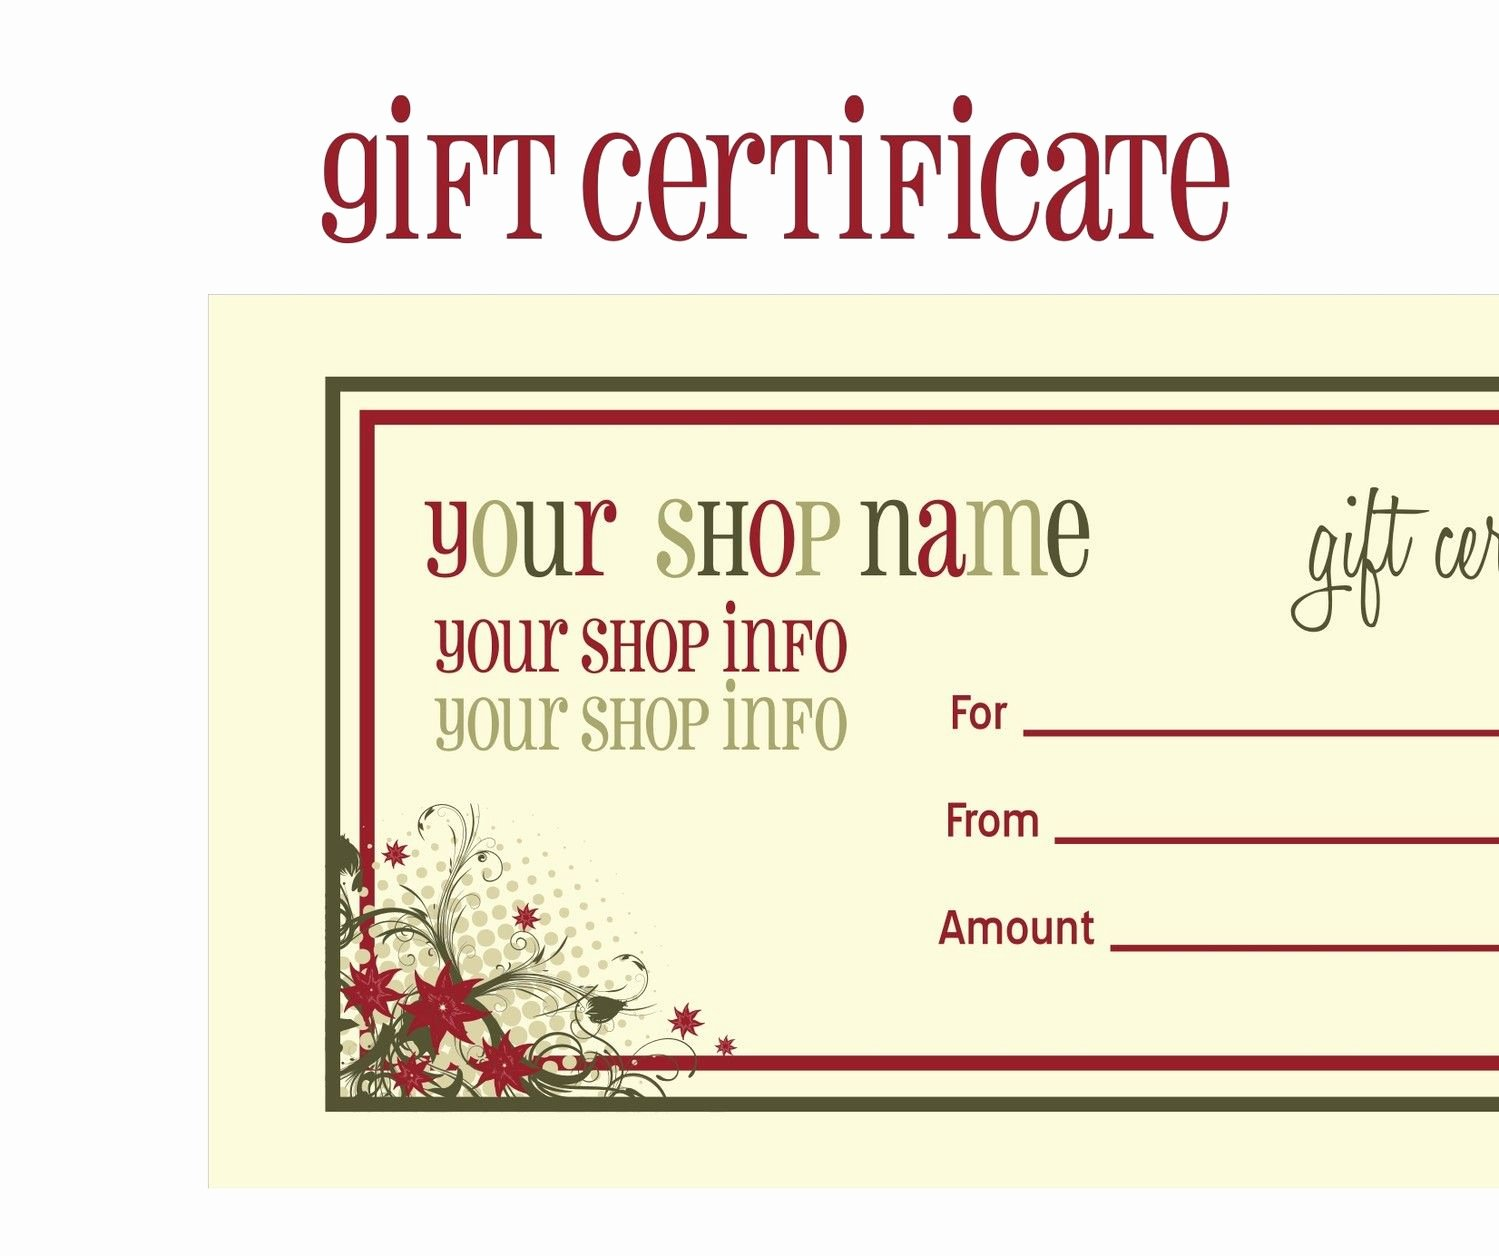 Gftlz Gift Certificate Template Unique Certificates Printable Calendars Free Printable Avon T